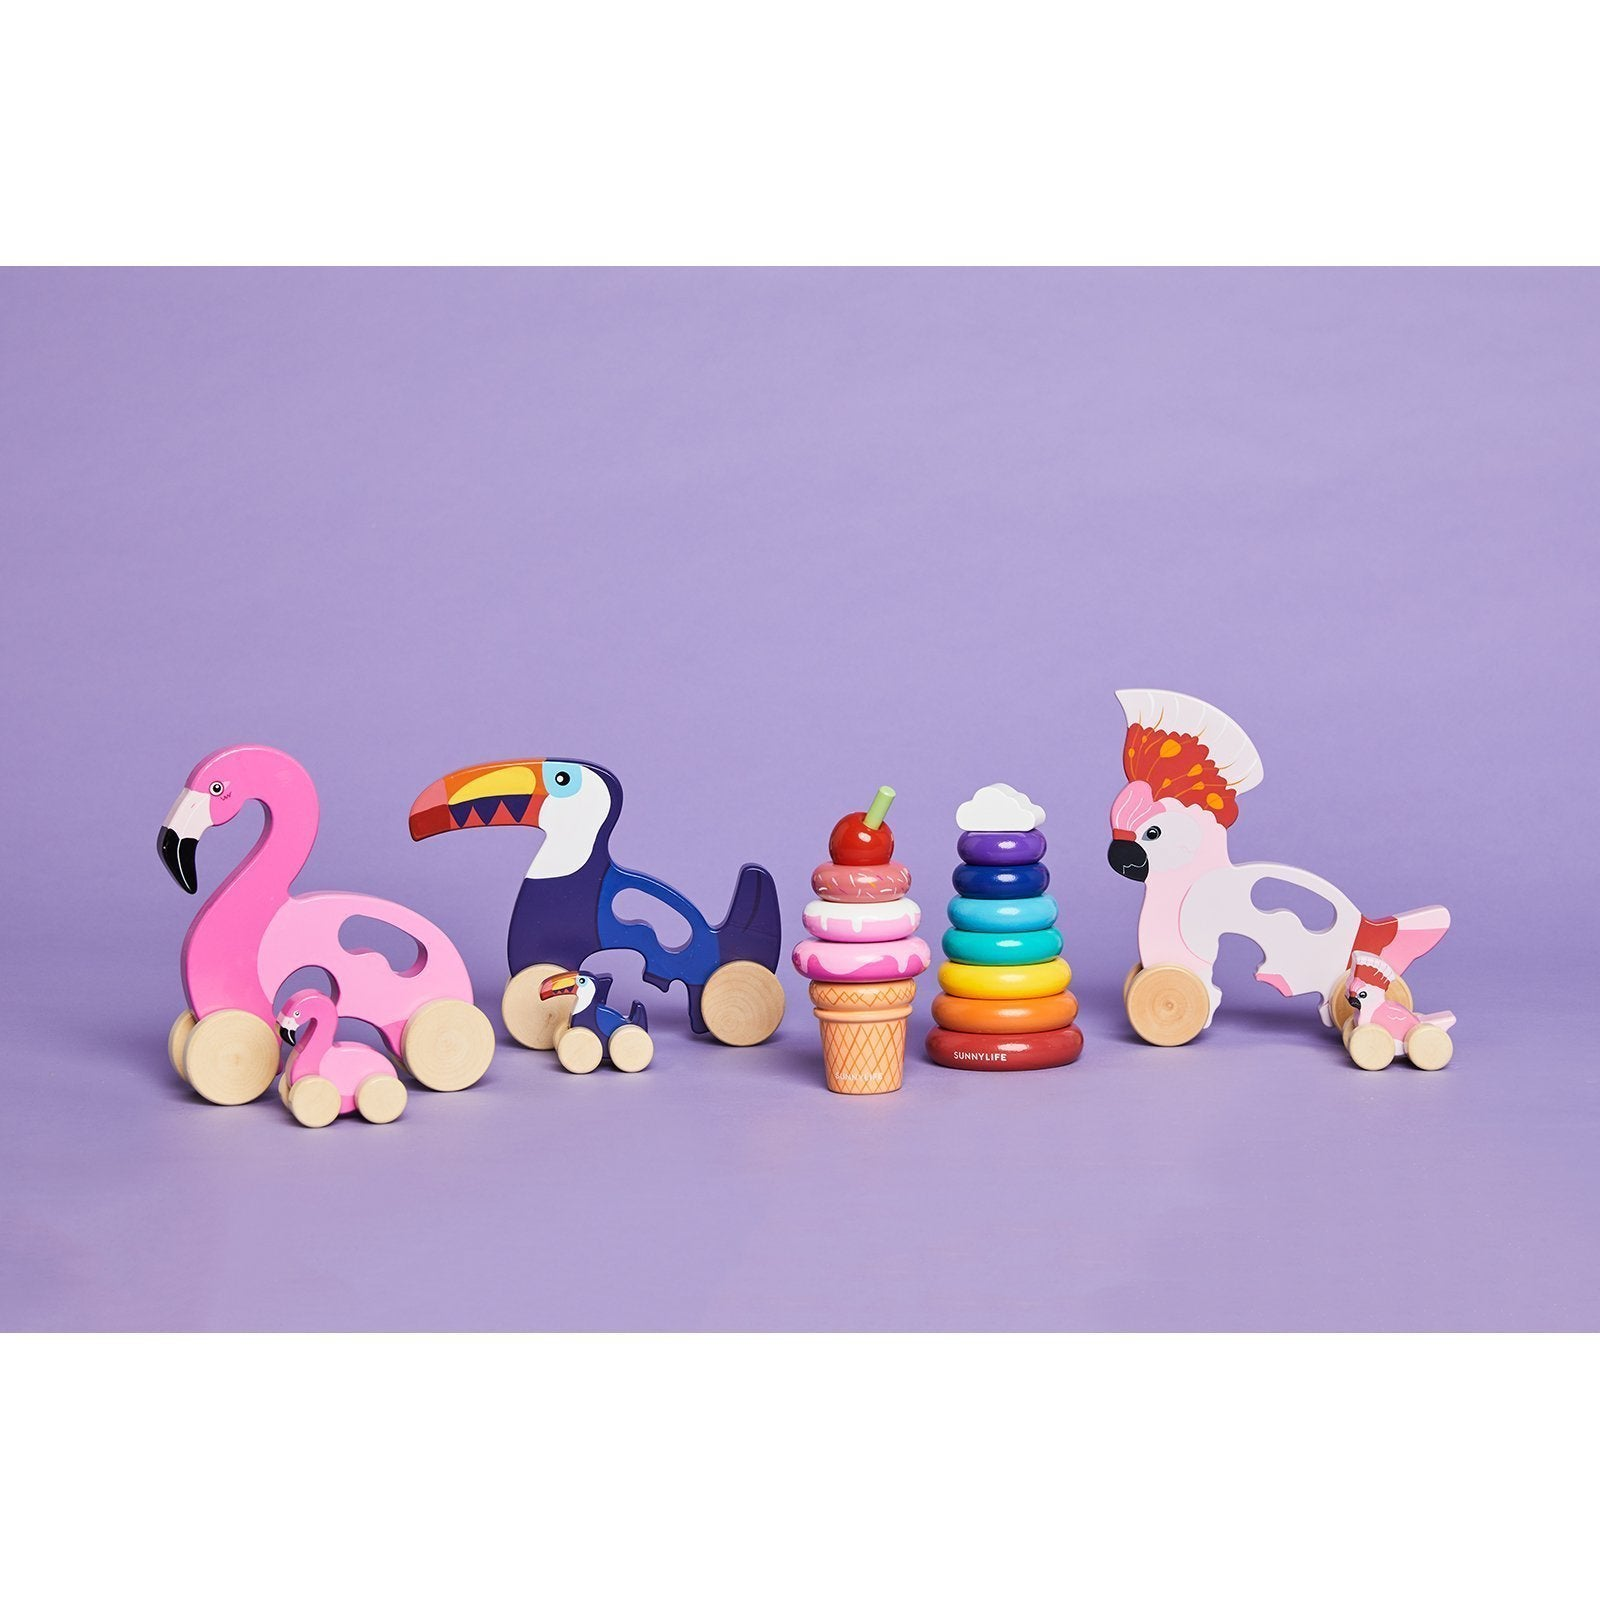 Ice Cream Stacking Toy